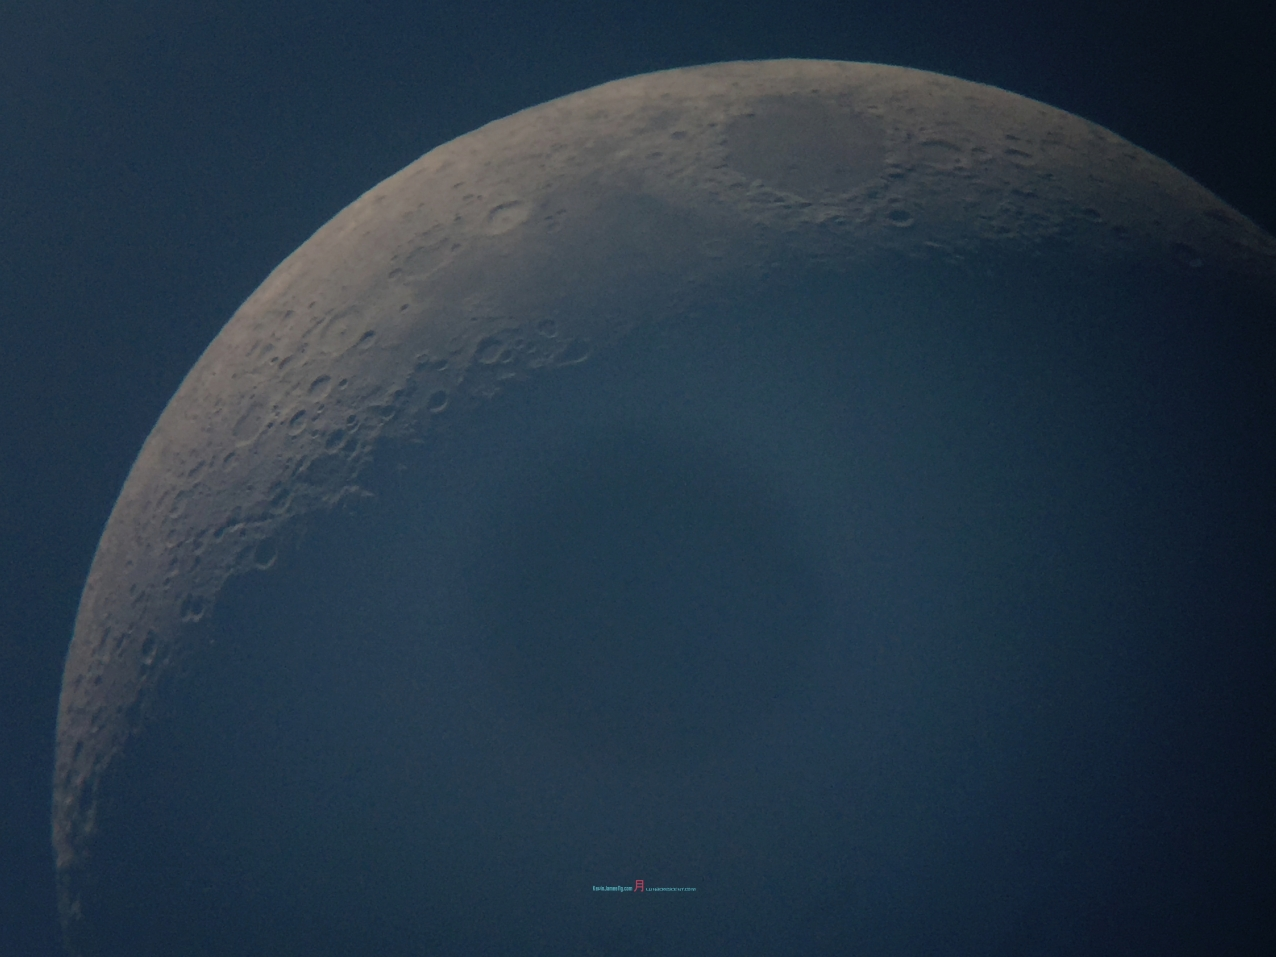 the sunset crescent moon - looking at circumference shows it not round but with cratered mountains ..